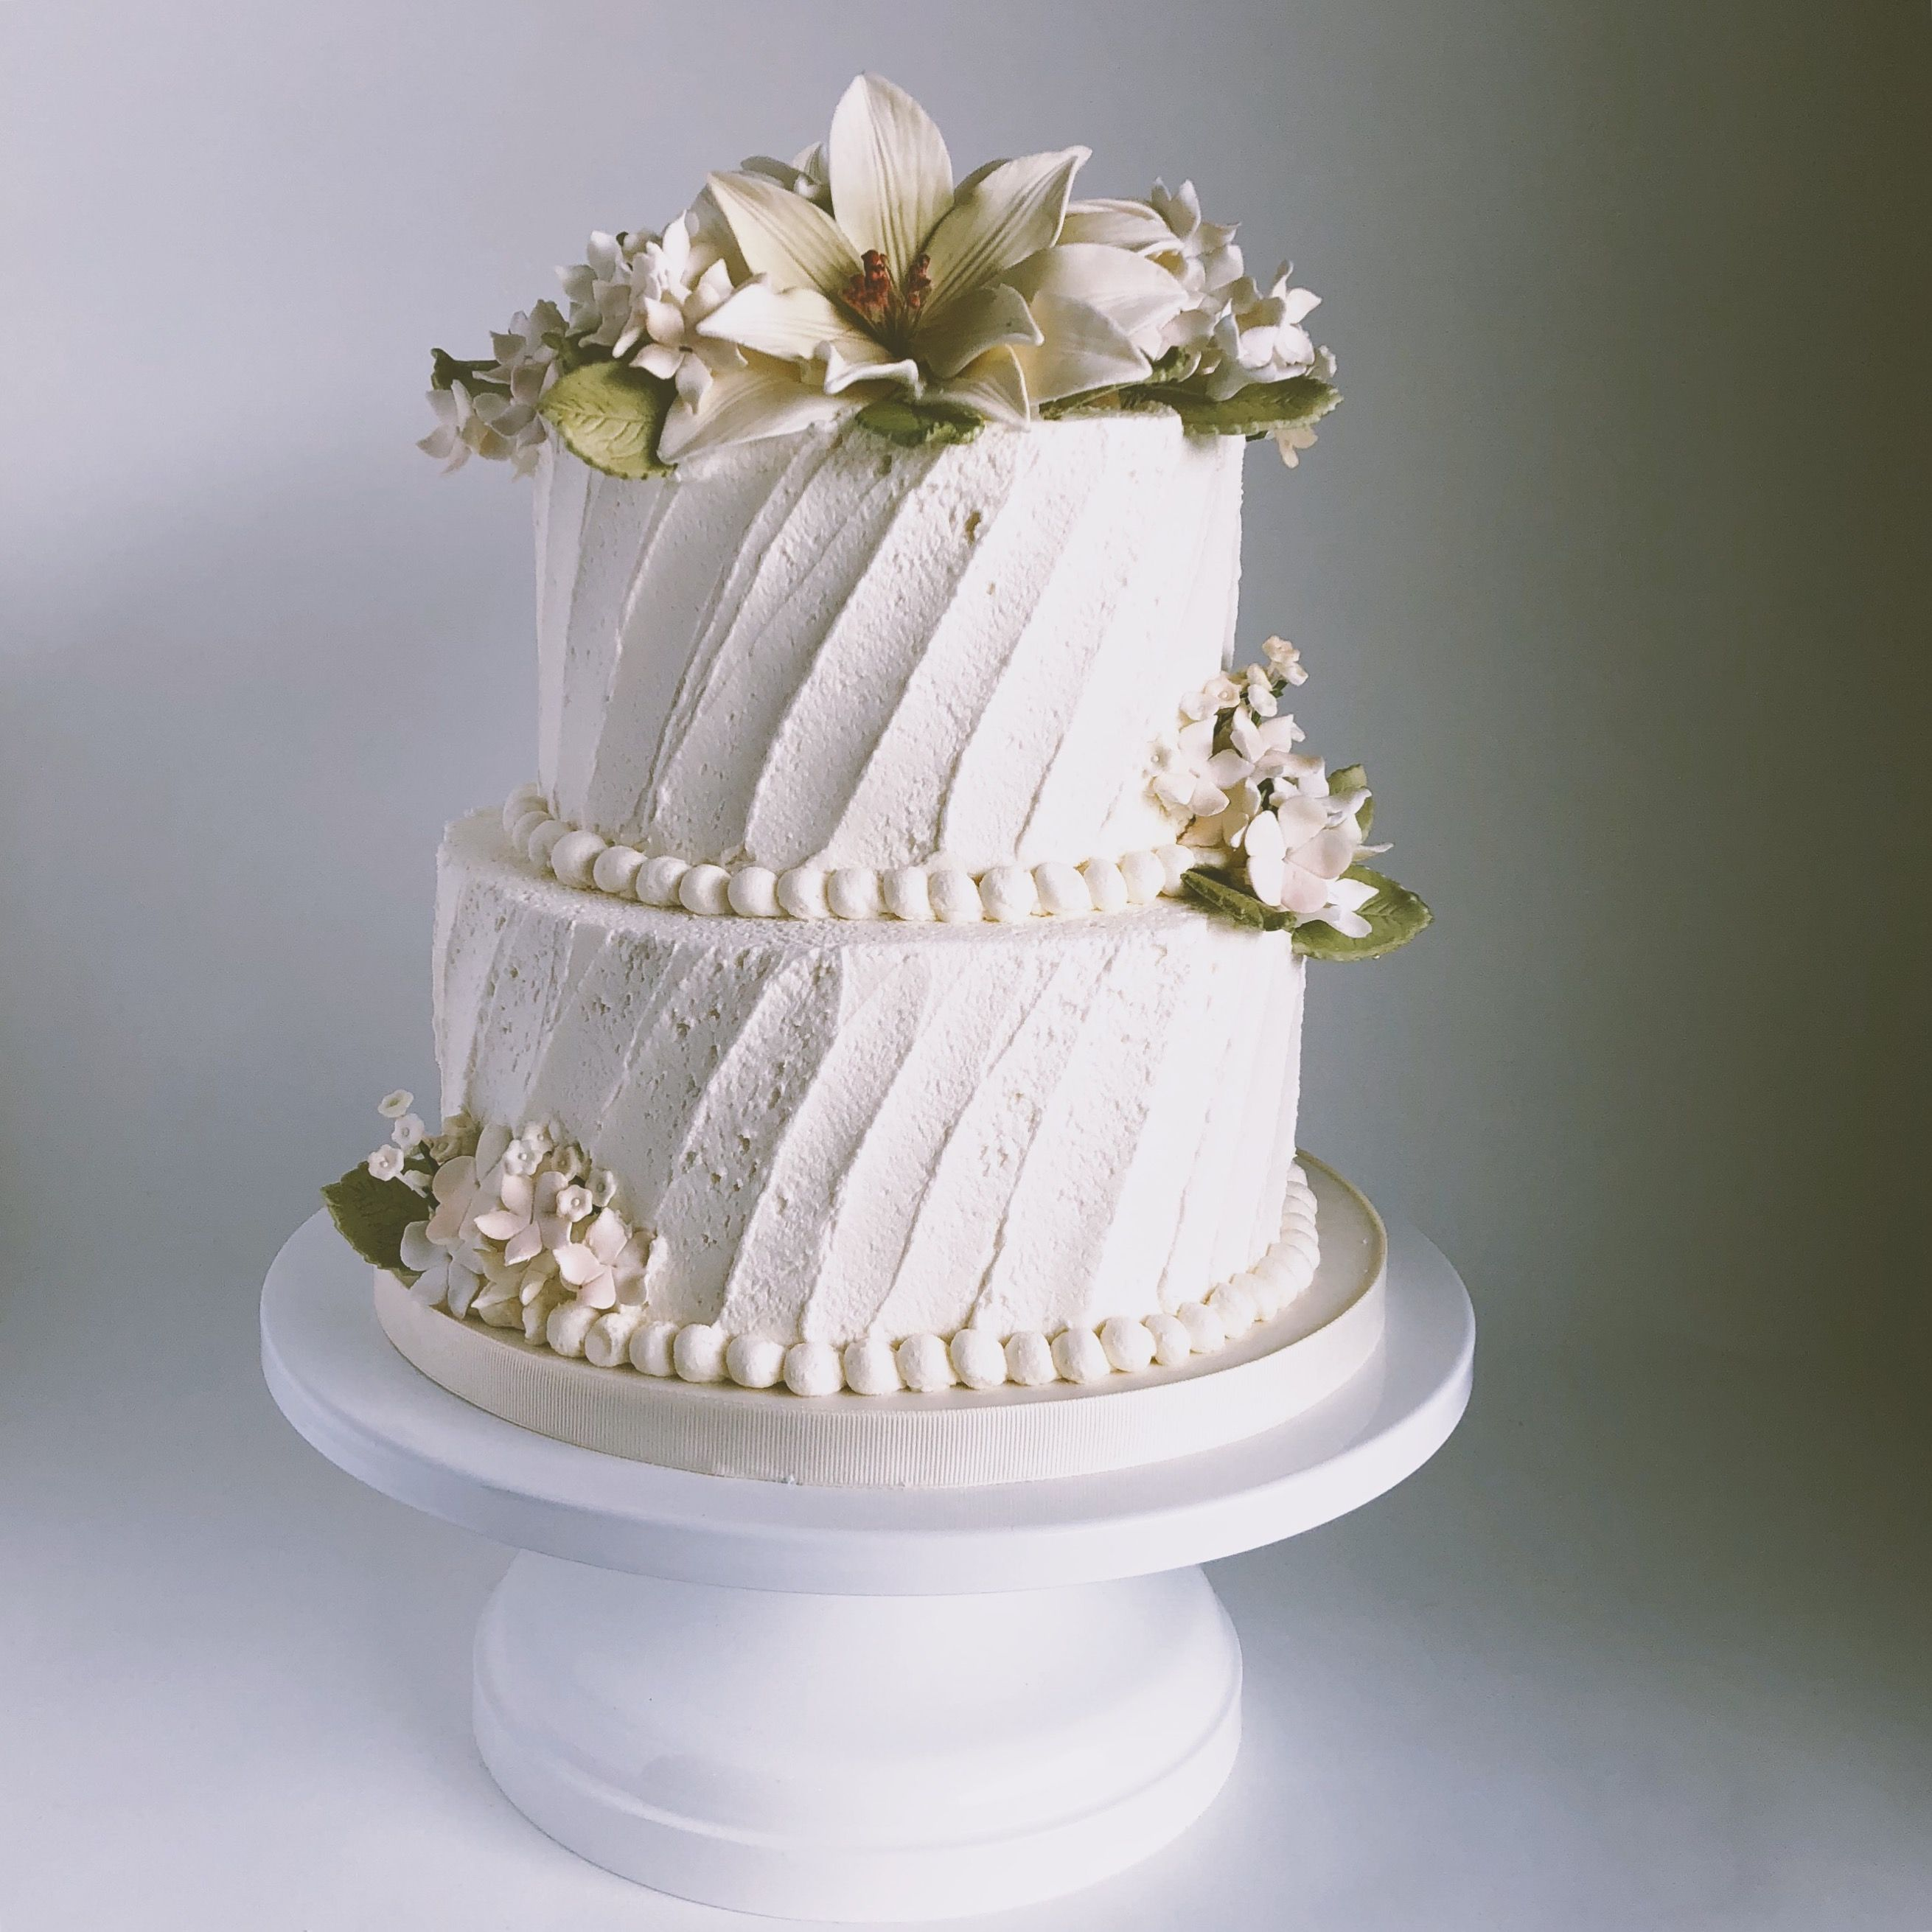 Beautiful classic and simple white buttercream wedding